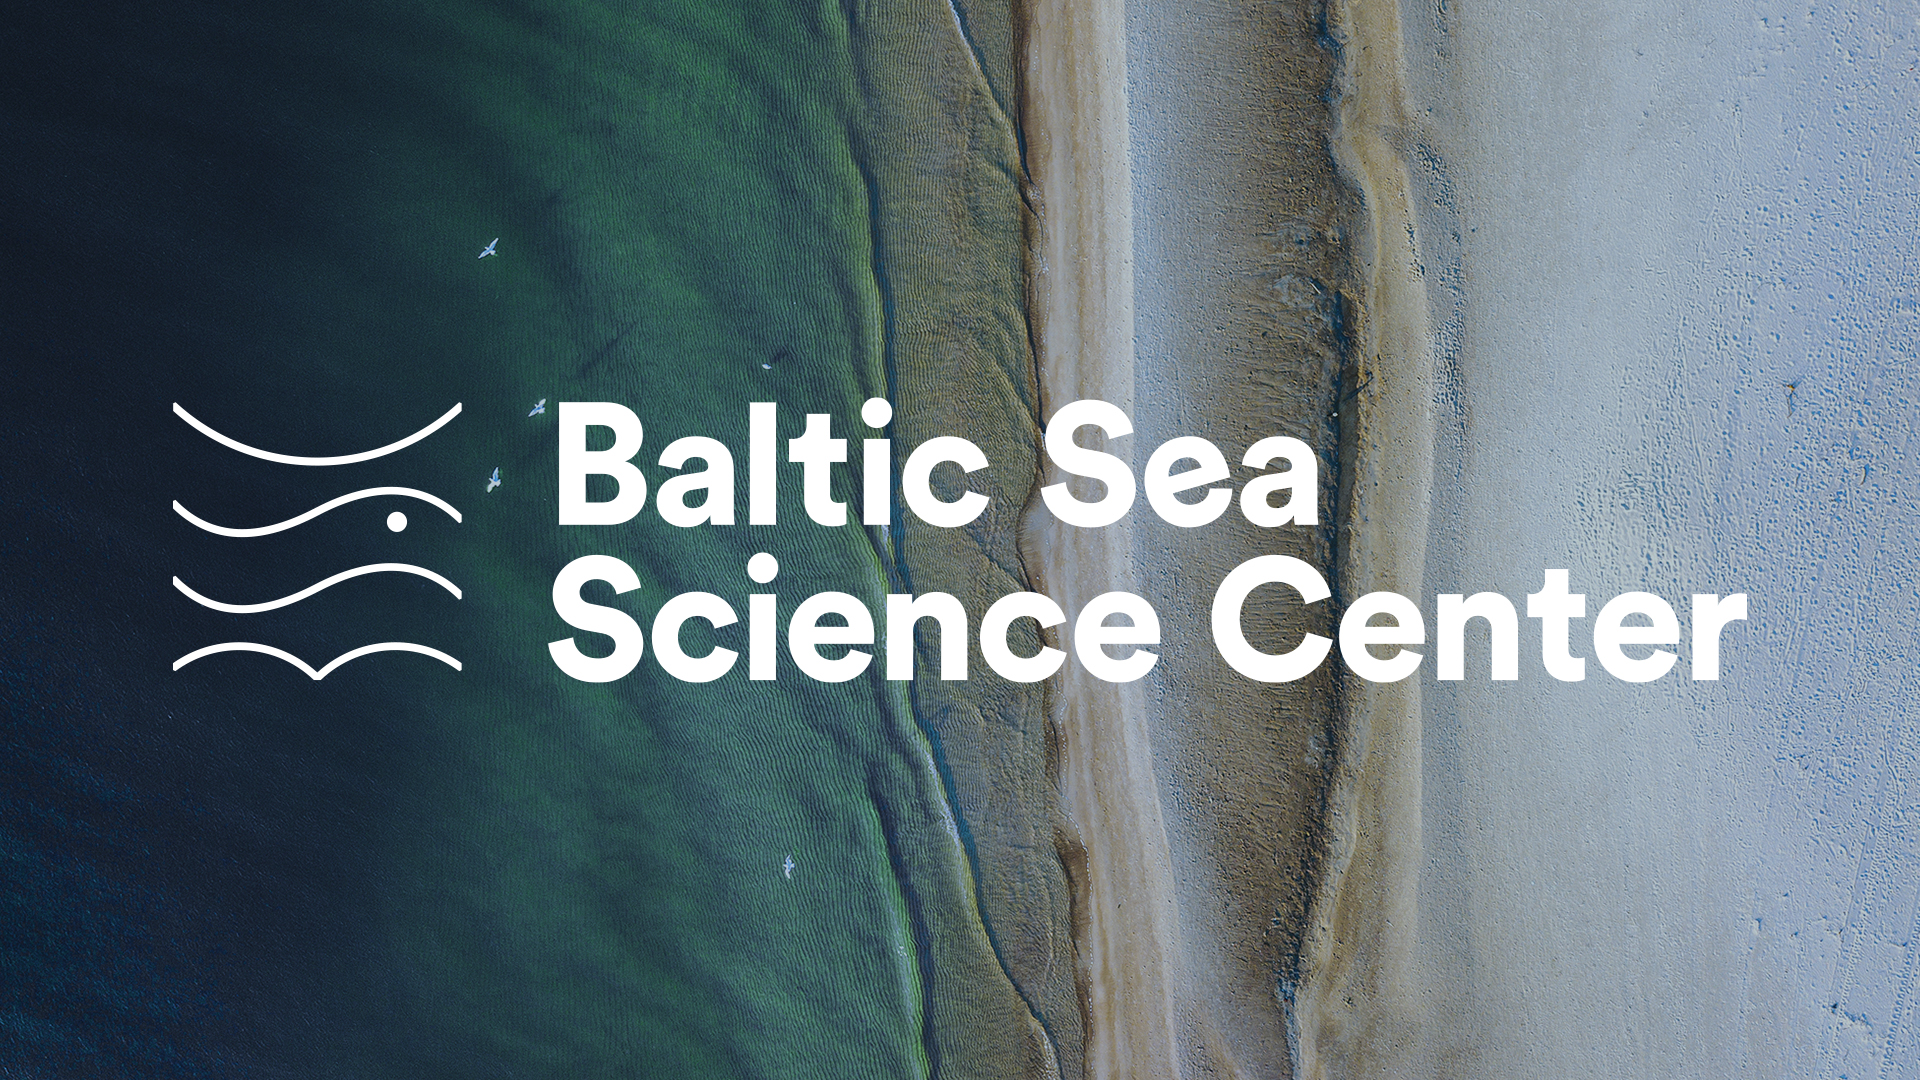 Baltic Sea Science Center